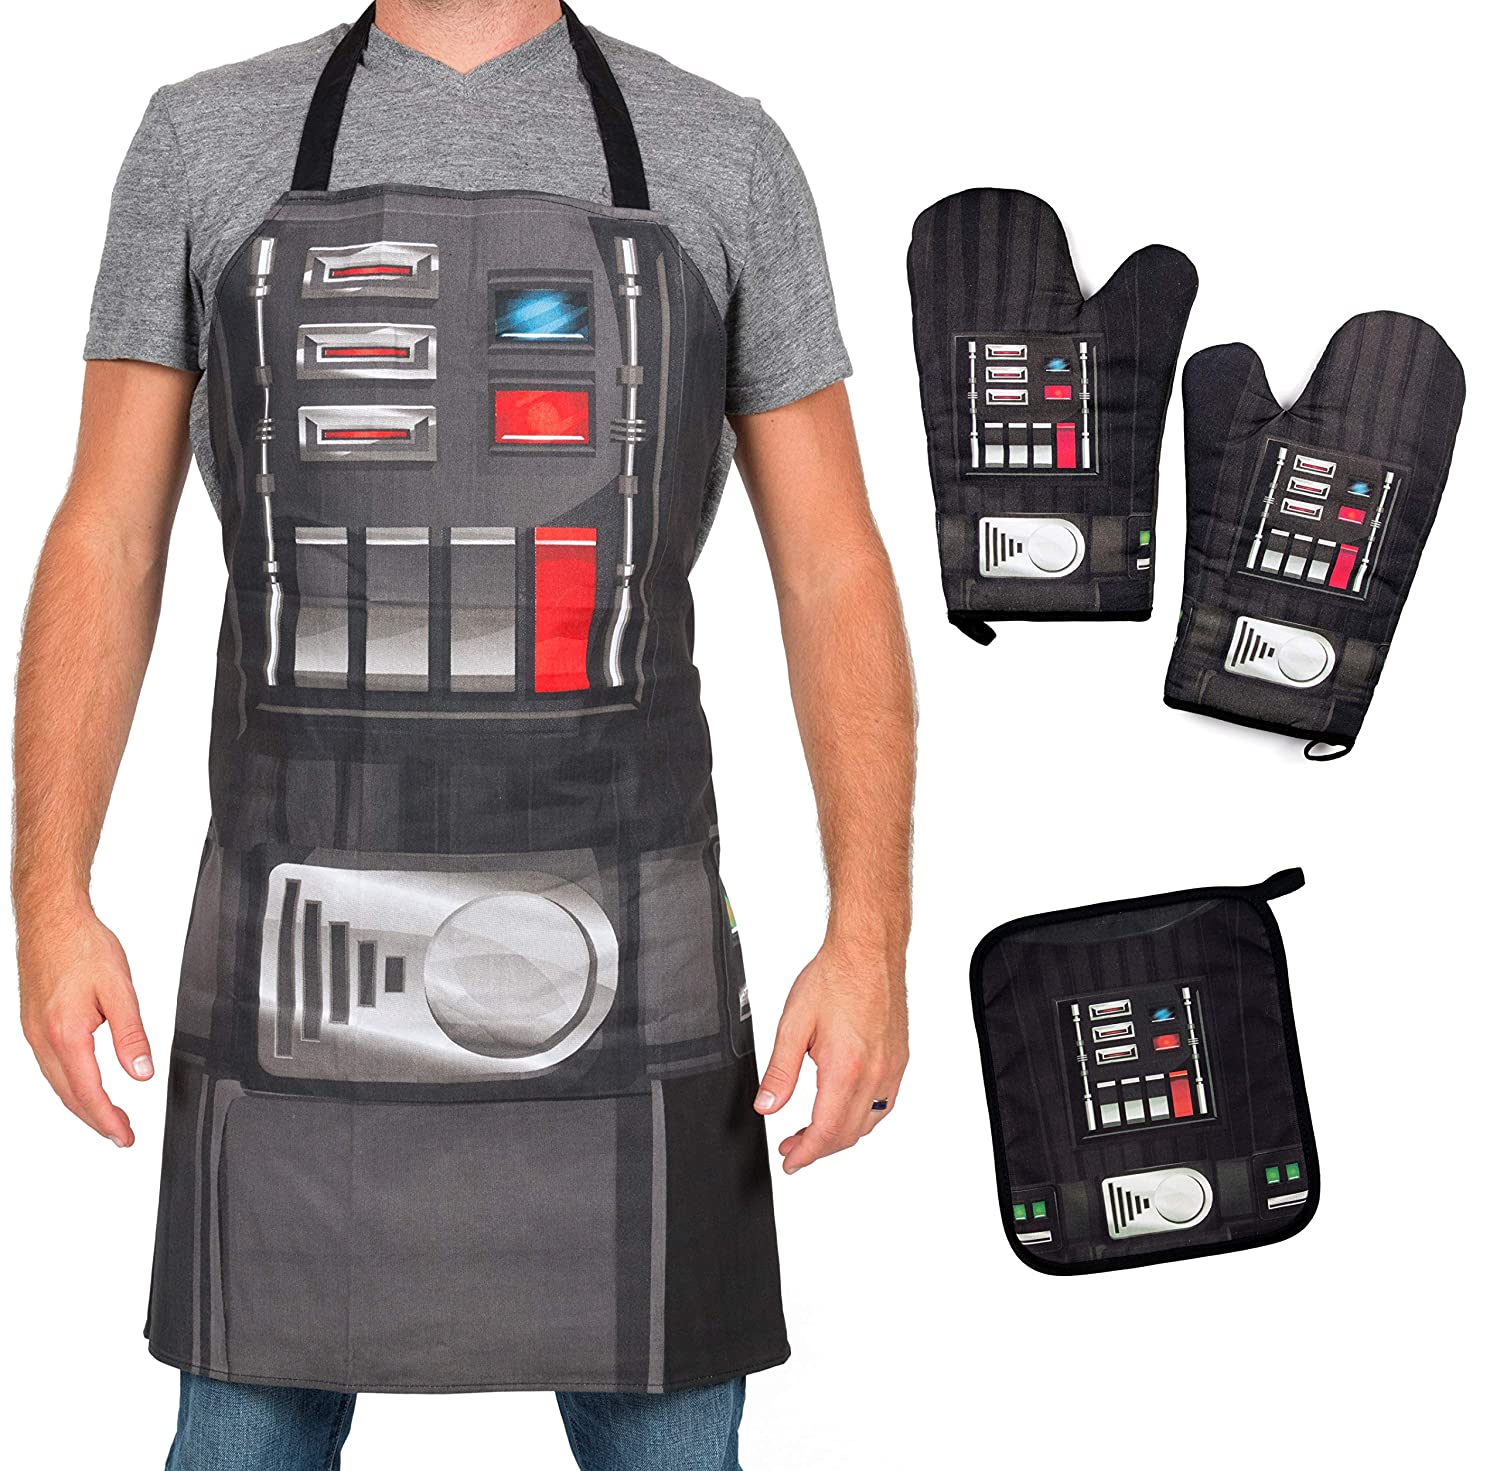 Star Wars Darth Vader Apron, Oven Mitts and Pot Holder Trivet Set - Grill and Cook on The Dark Side - One Size - 4 Piece Set